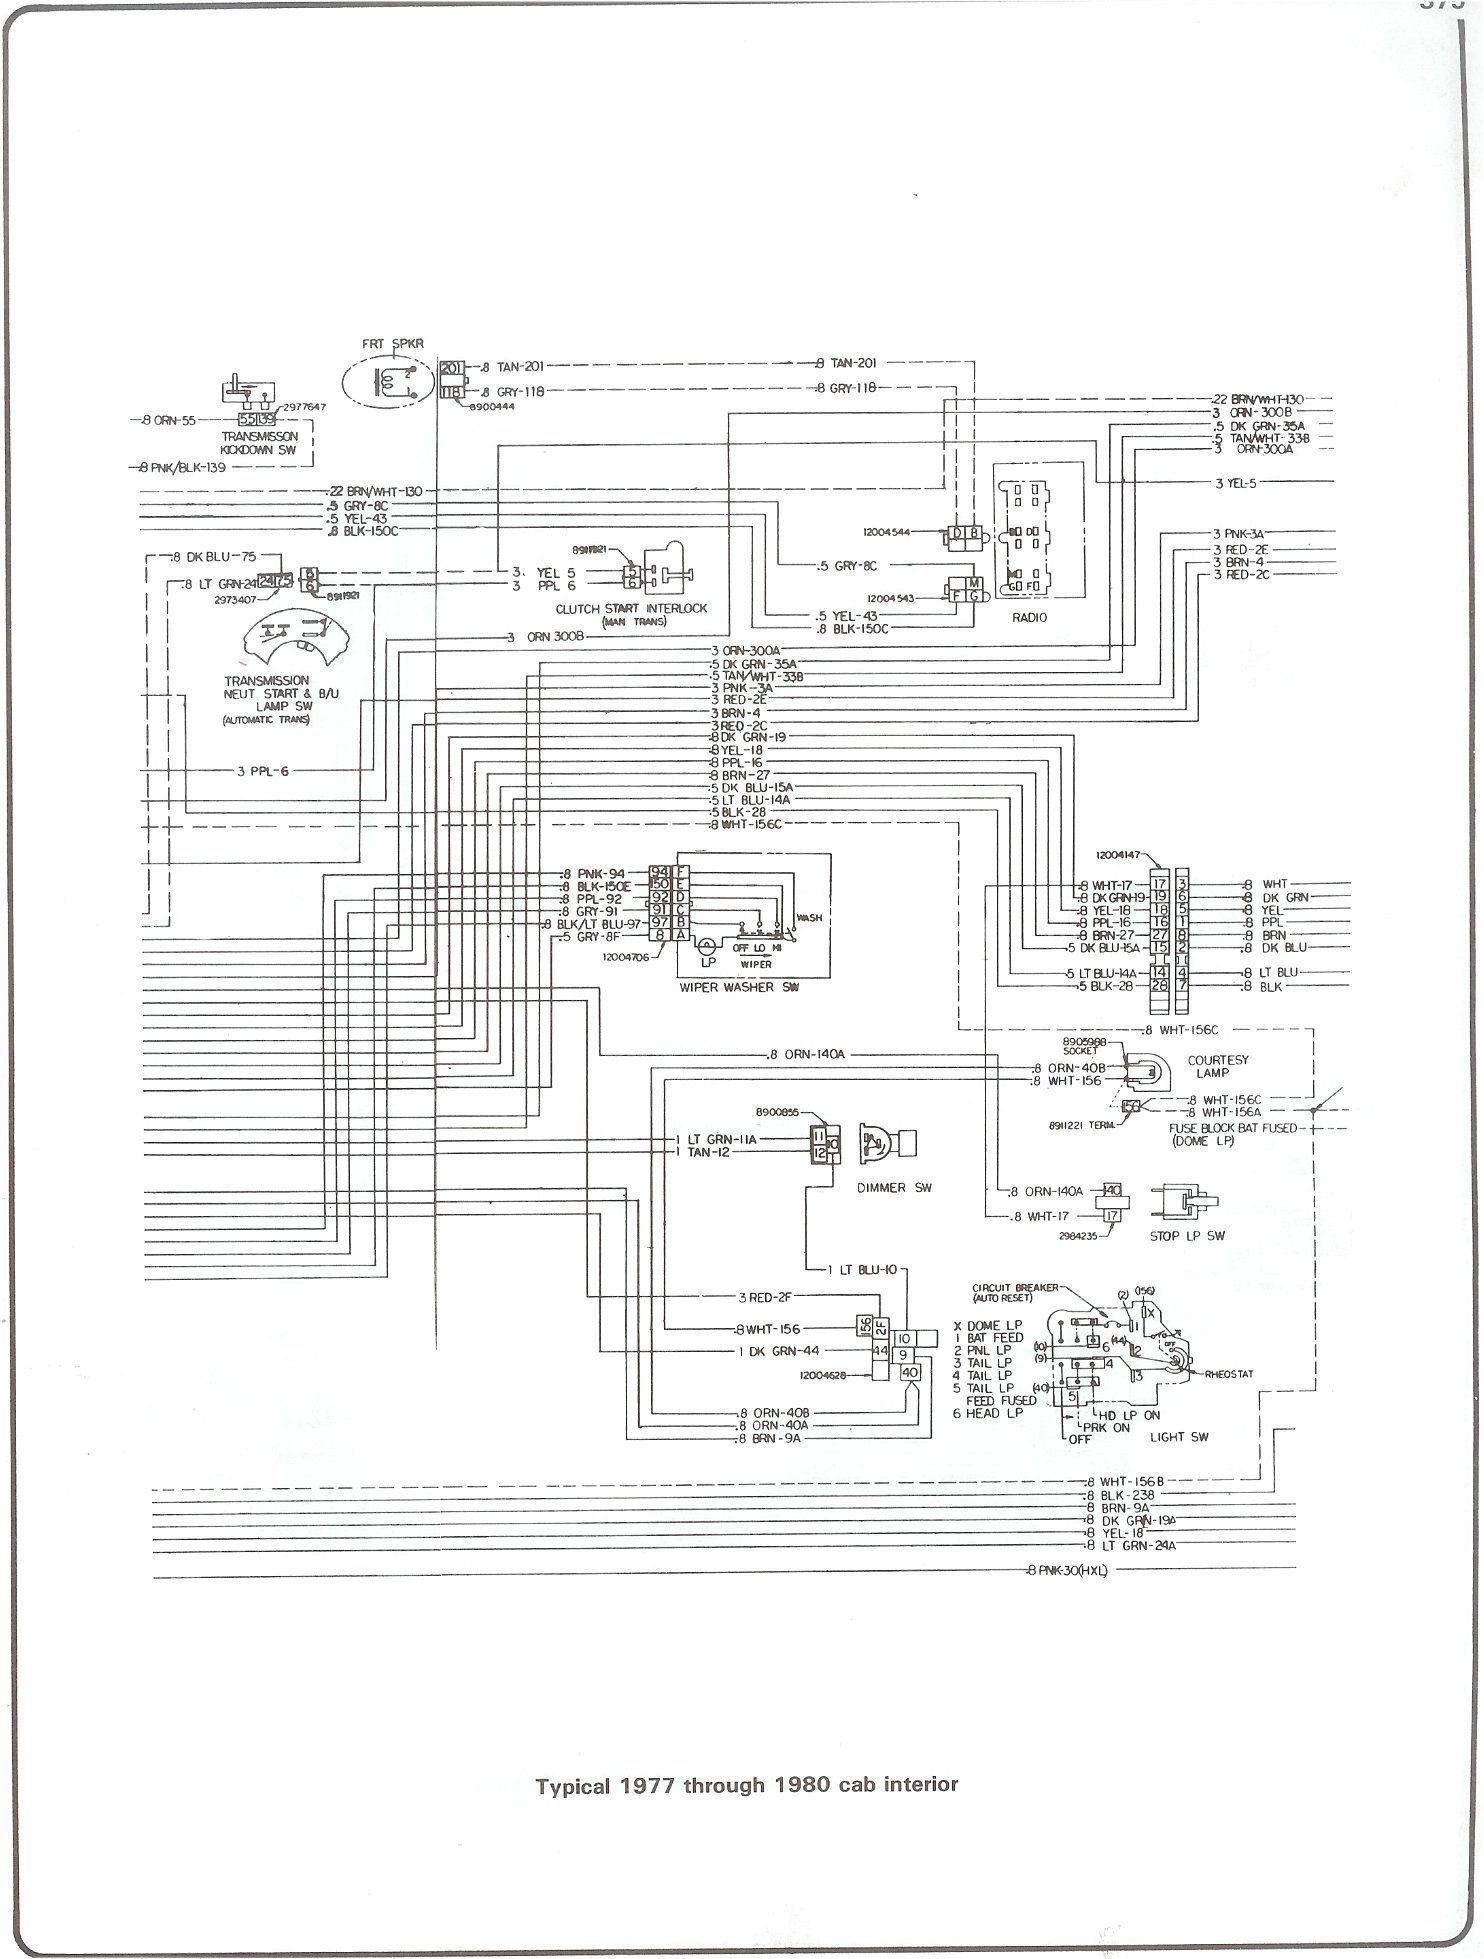 77 80_cab_inter complete 73 87 wiring diagrams k20 wiring harness at mifinder.co